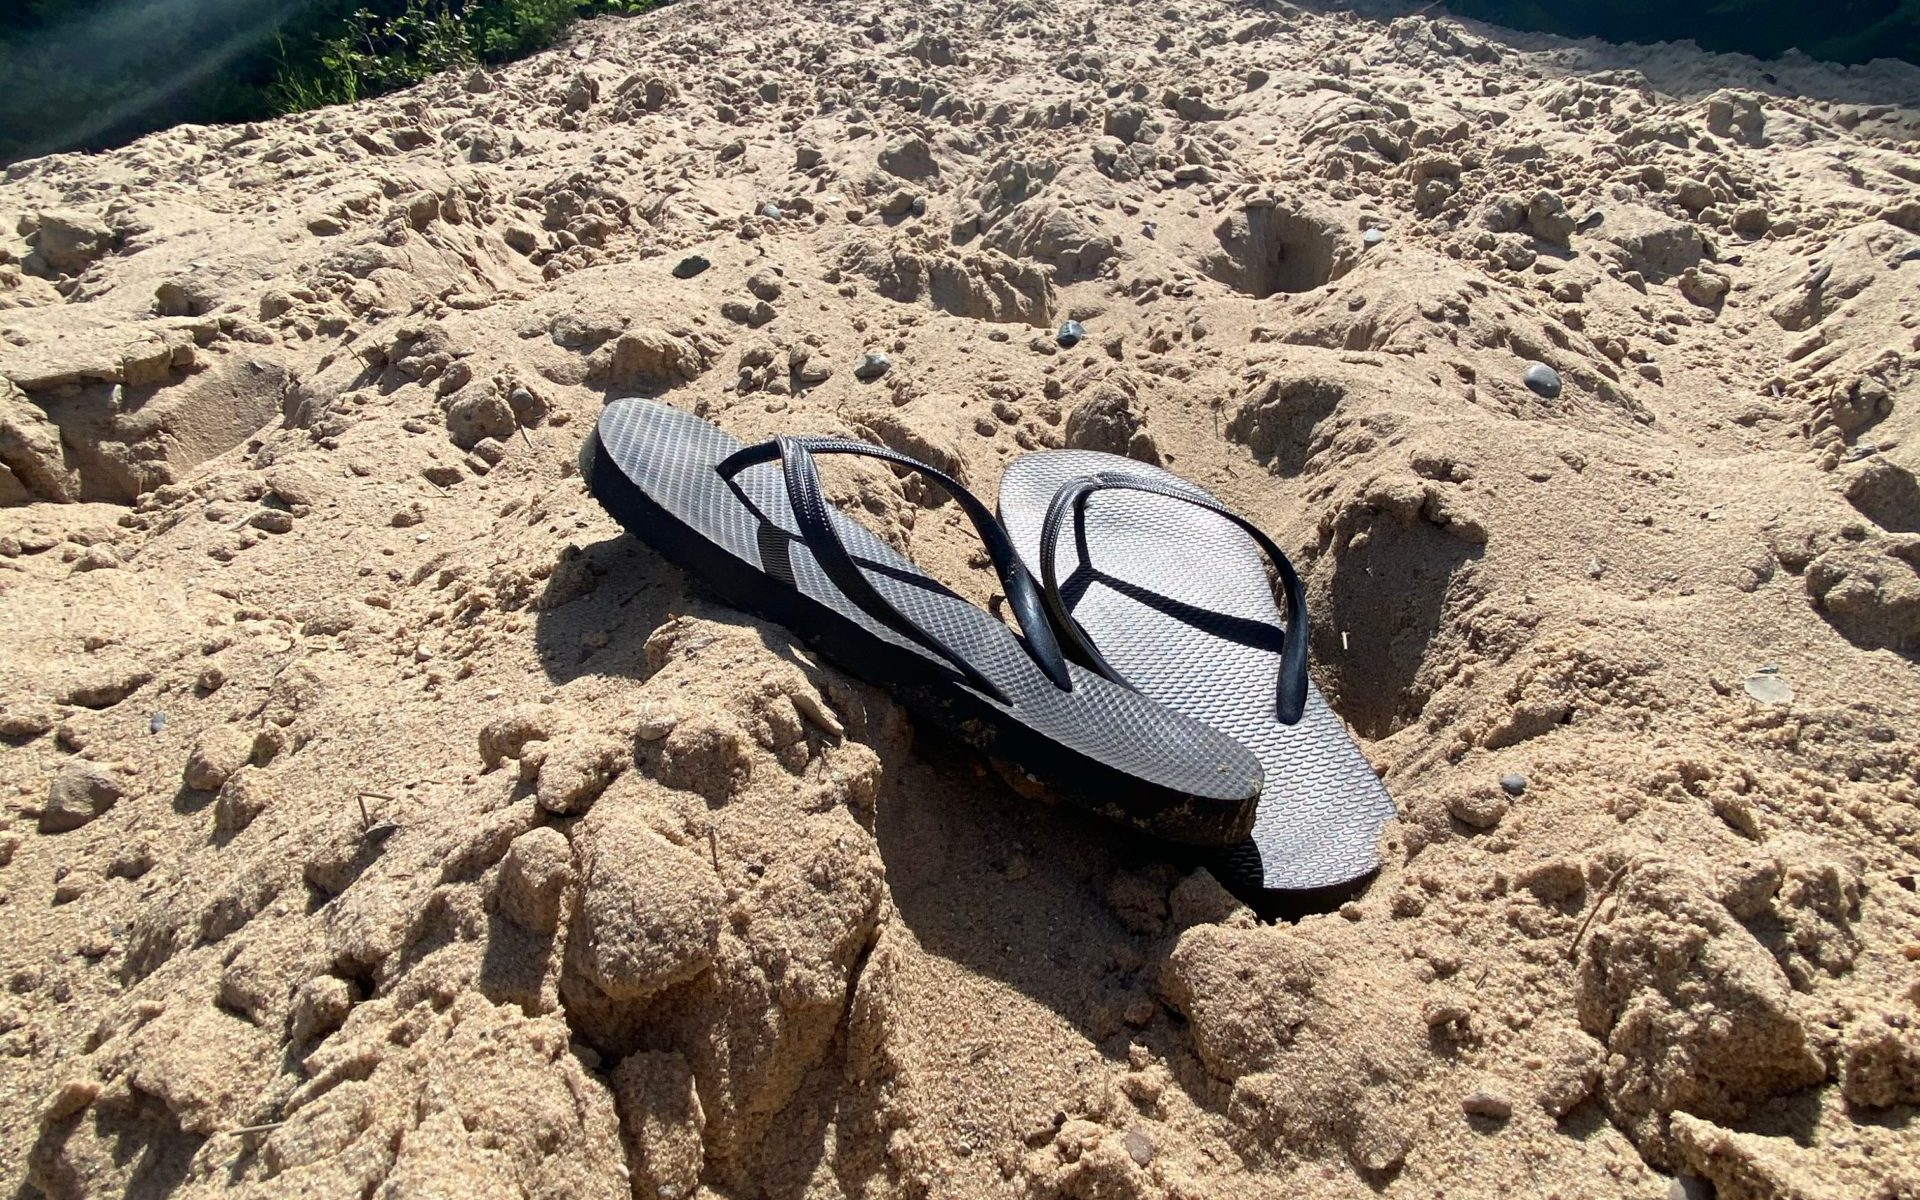 Flip Flops at Bottom of Sand Dune